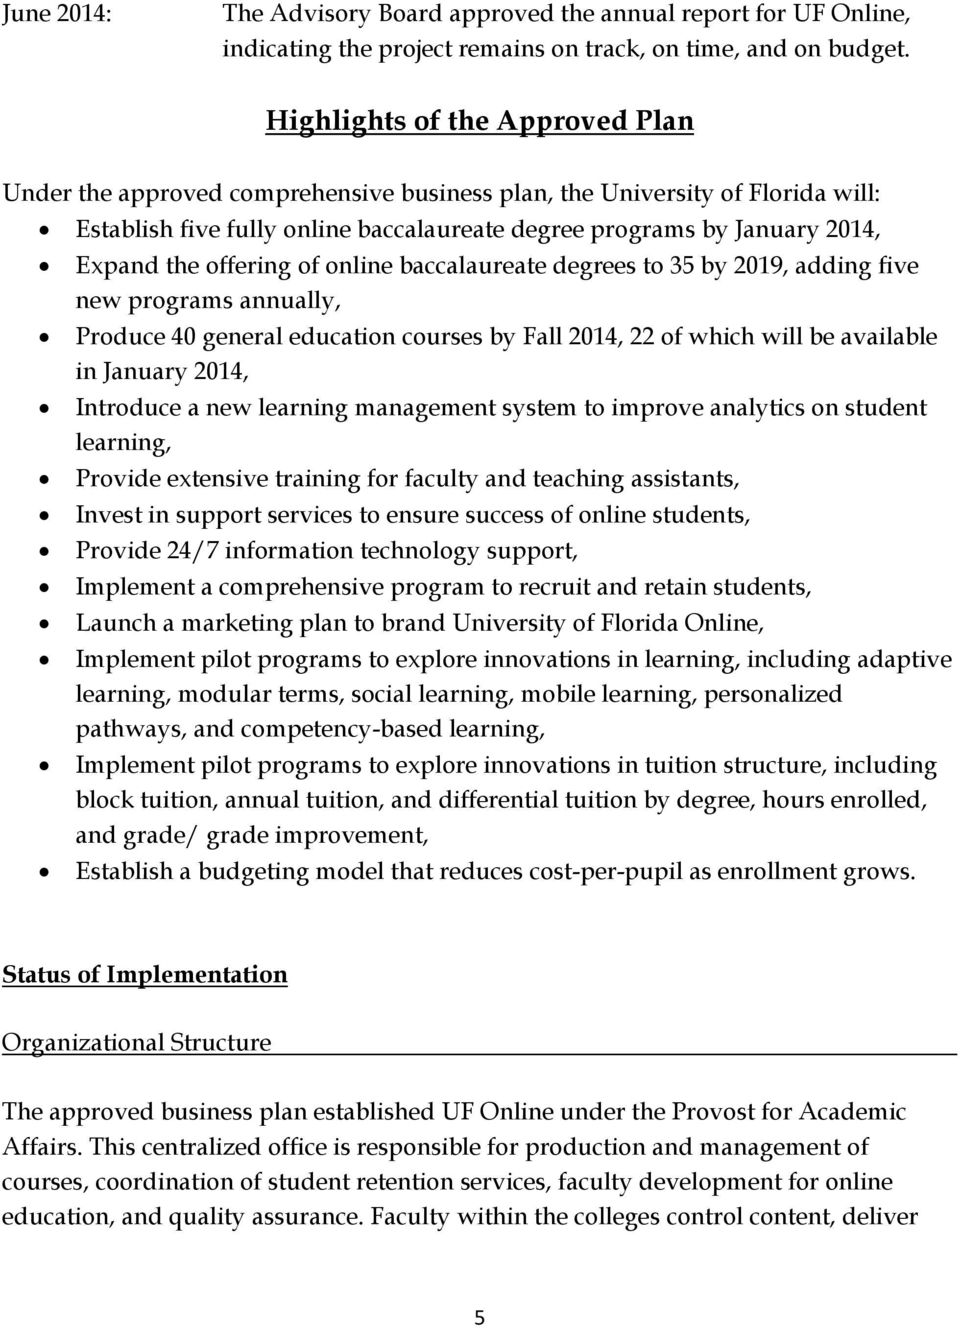 offering of online baccalaureate degrees to 35 by 2019, adding five new programs annually, Produce 40 general education courses by Fall 2014, 22 of which will be available in January 2014, Introduce